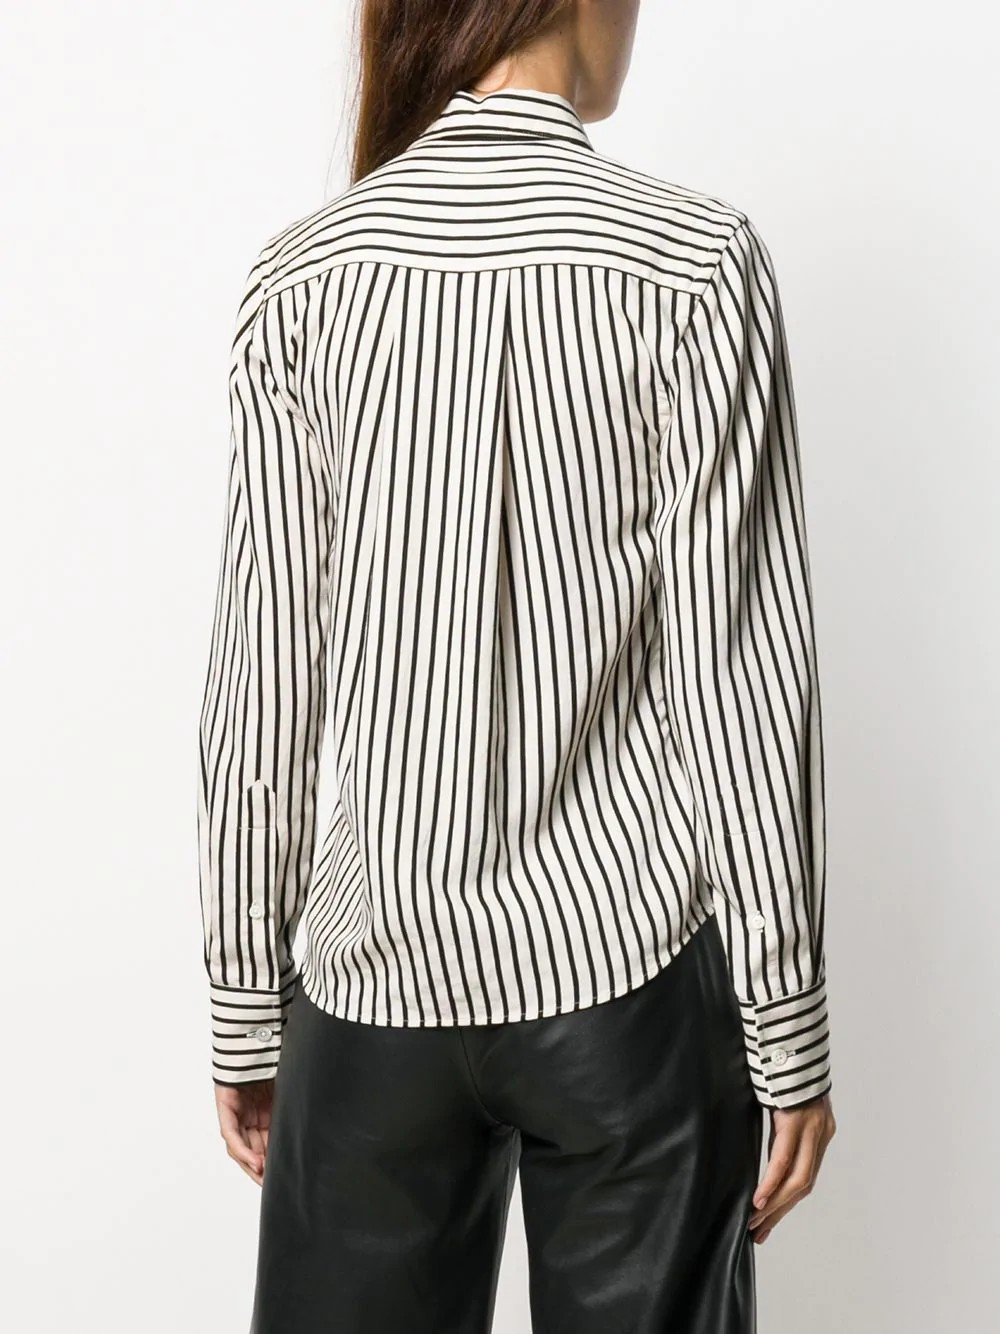 WOMAN SHIRT WITH CHEST POCKET